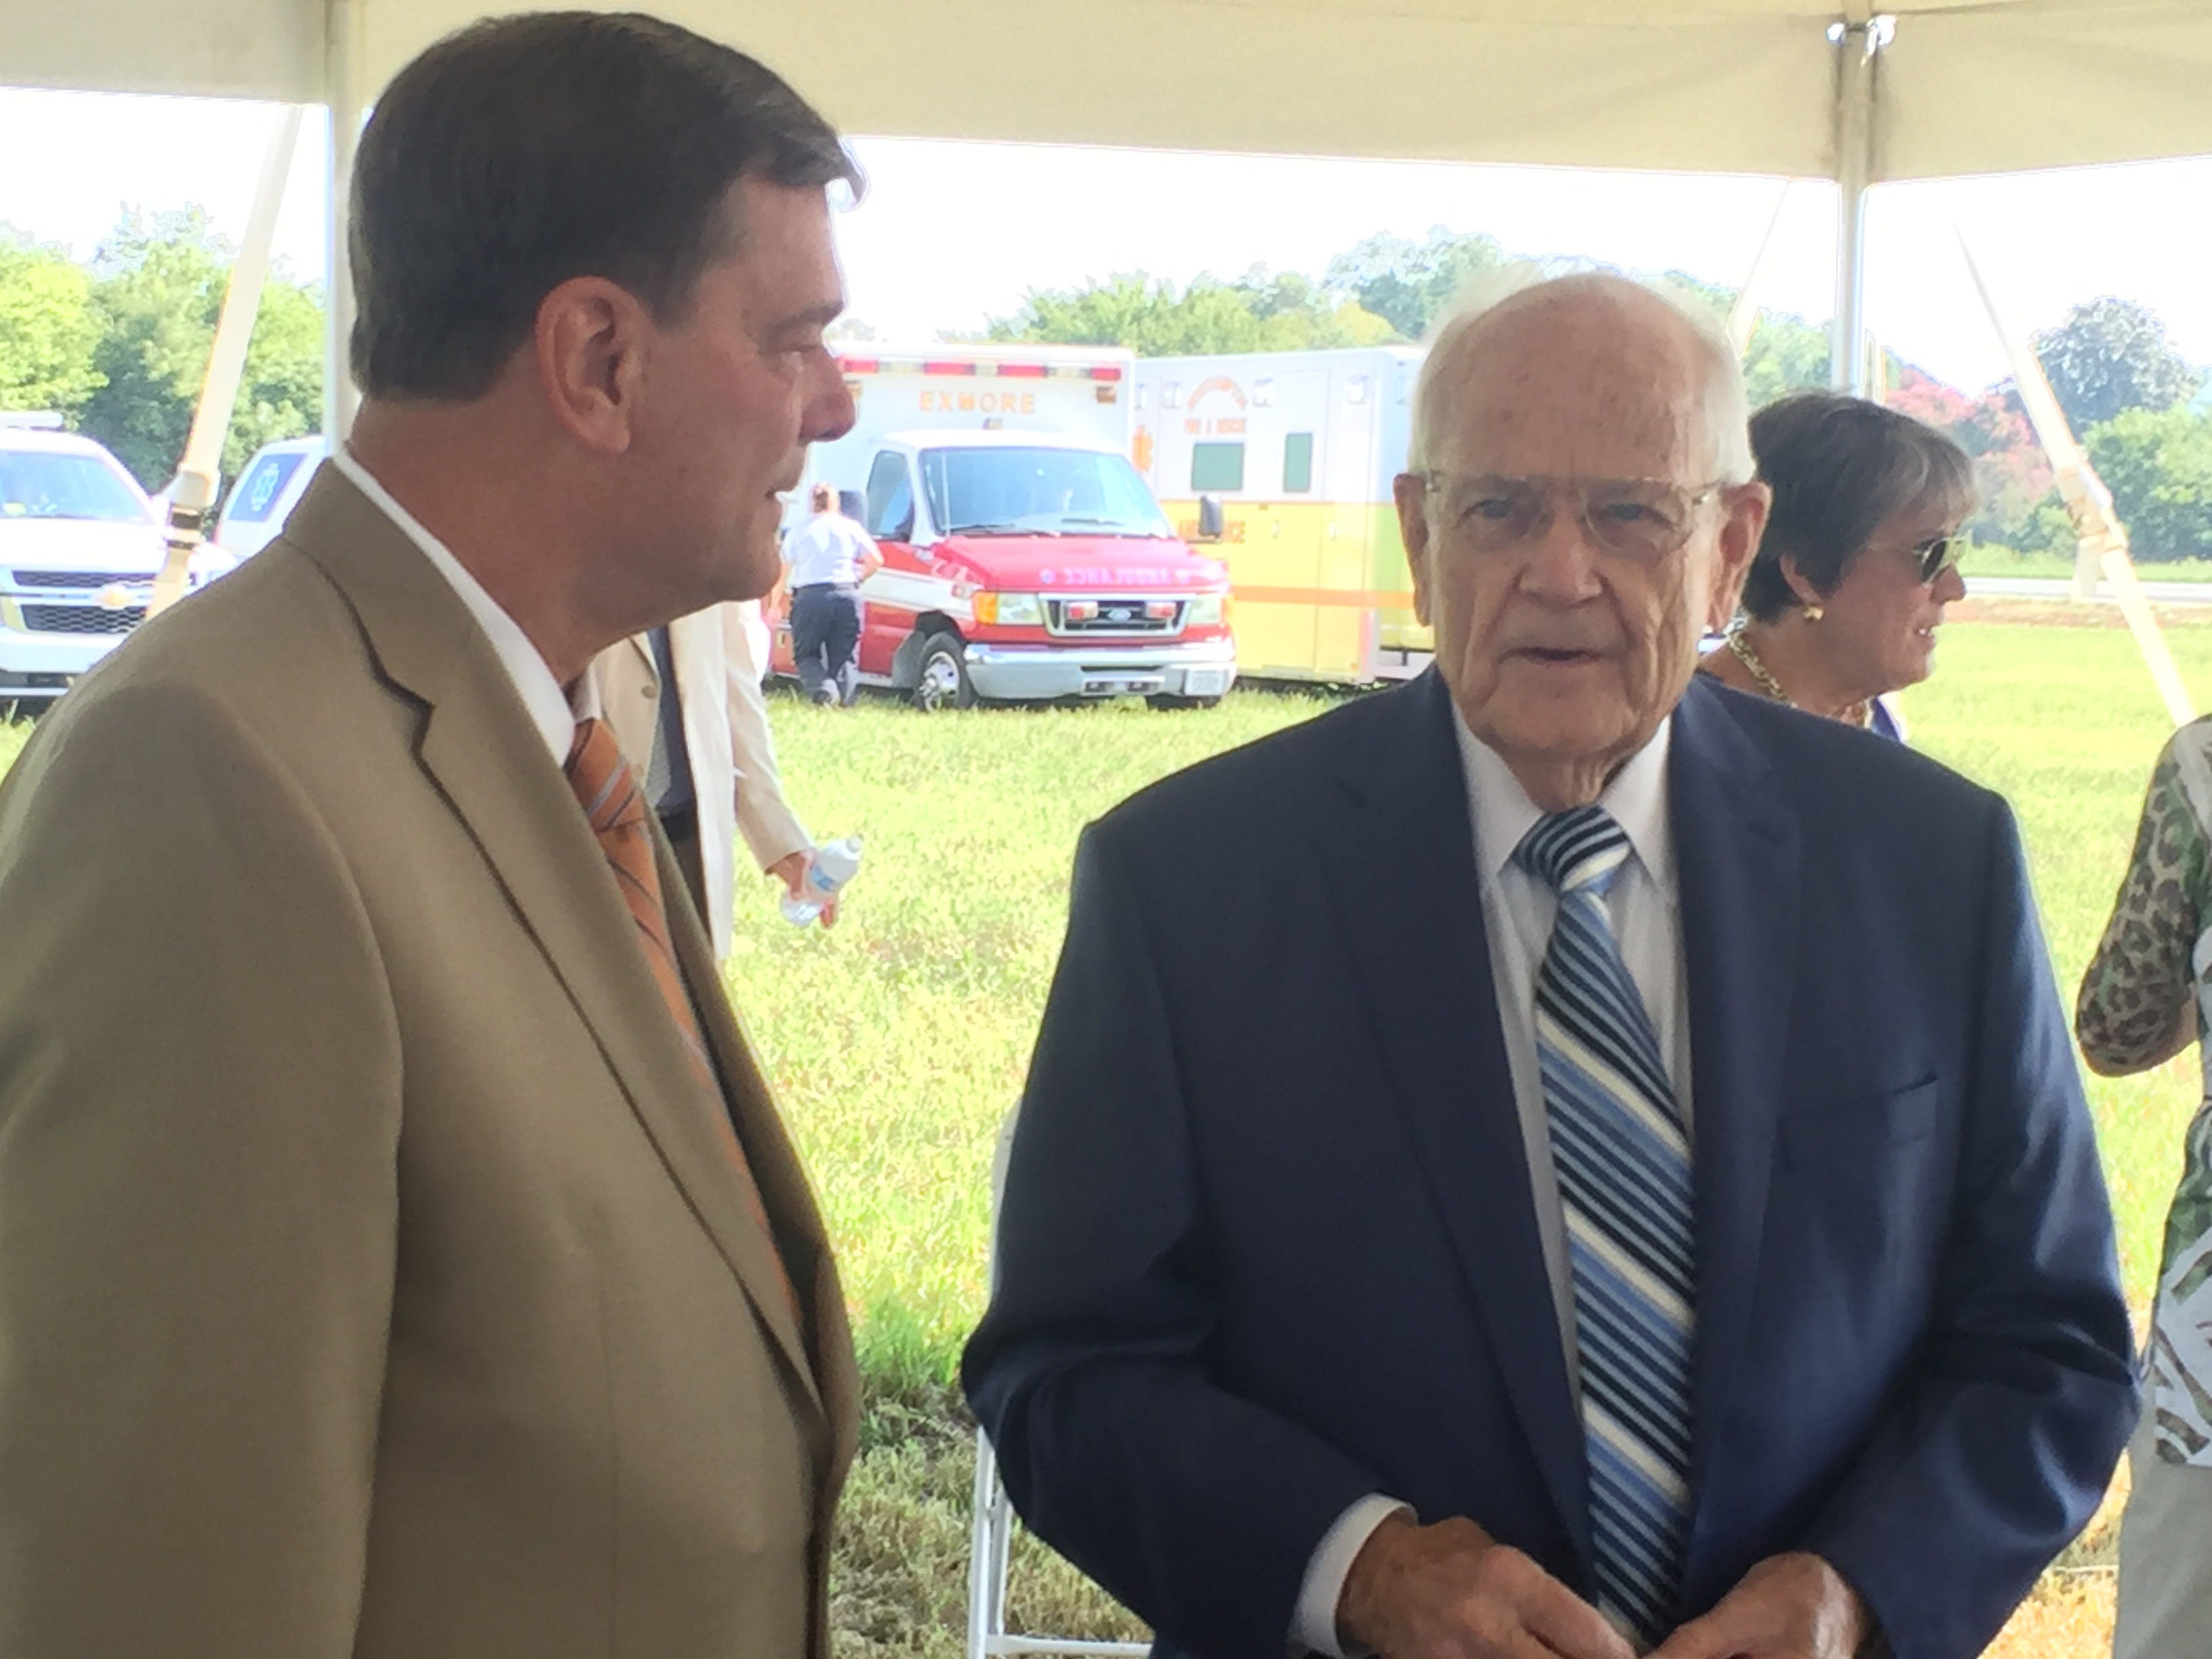 Spencer Murray, left, chats with George McMath before a groundbreaking ceremony for Eastville Community Health Center in Eastville, Virginia on Wednesday, Aug. 15, 2018.